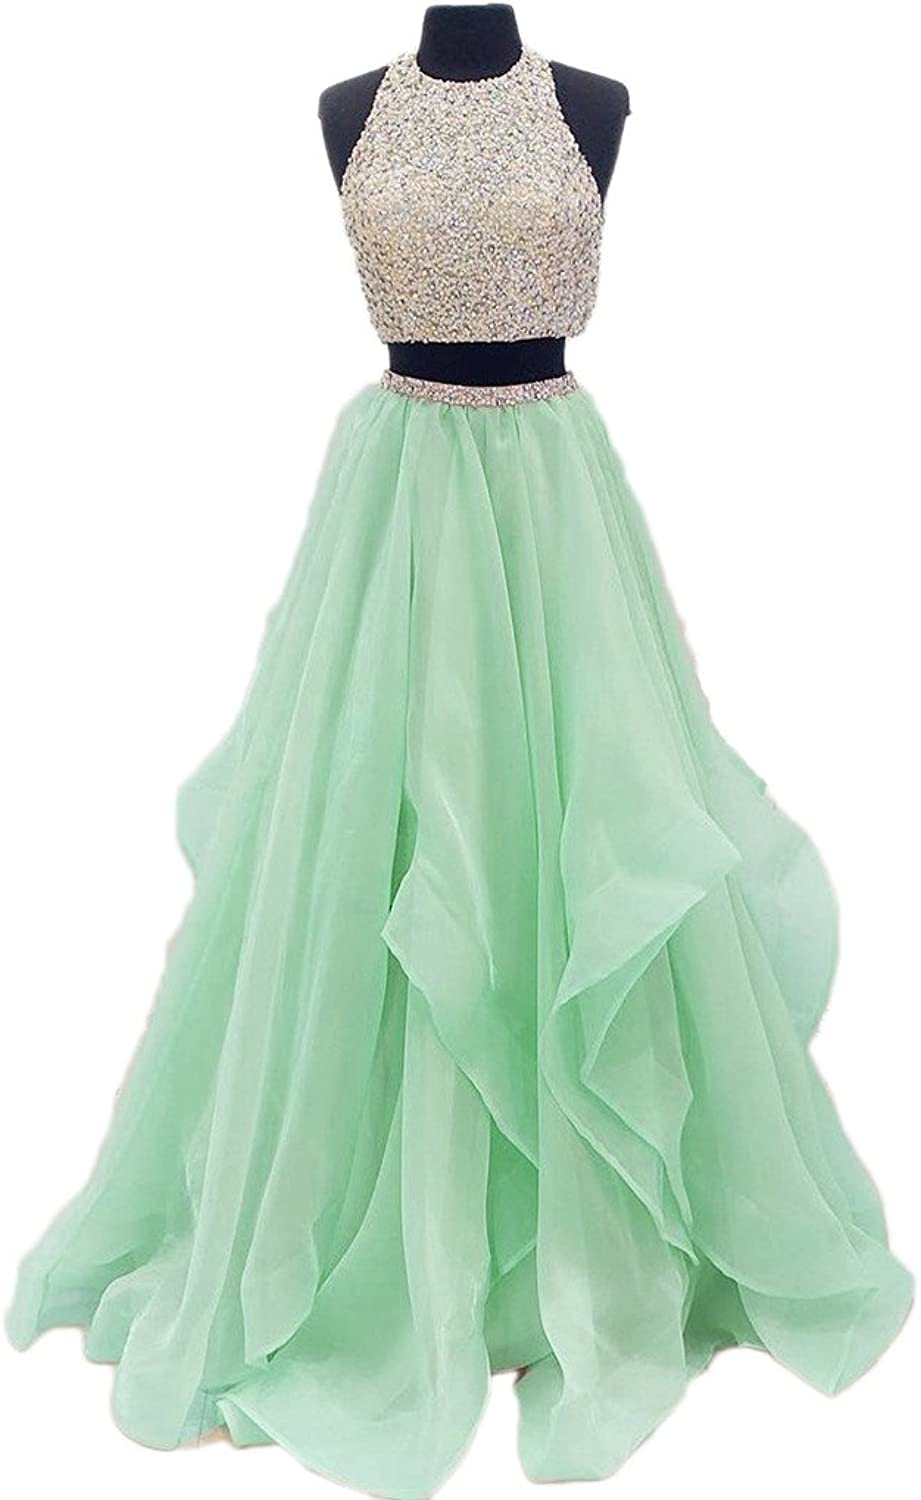 DKBridal Beaded Top Two Pieces Prom Dresses Evening Gown